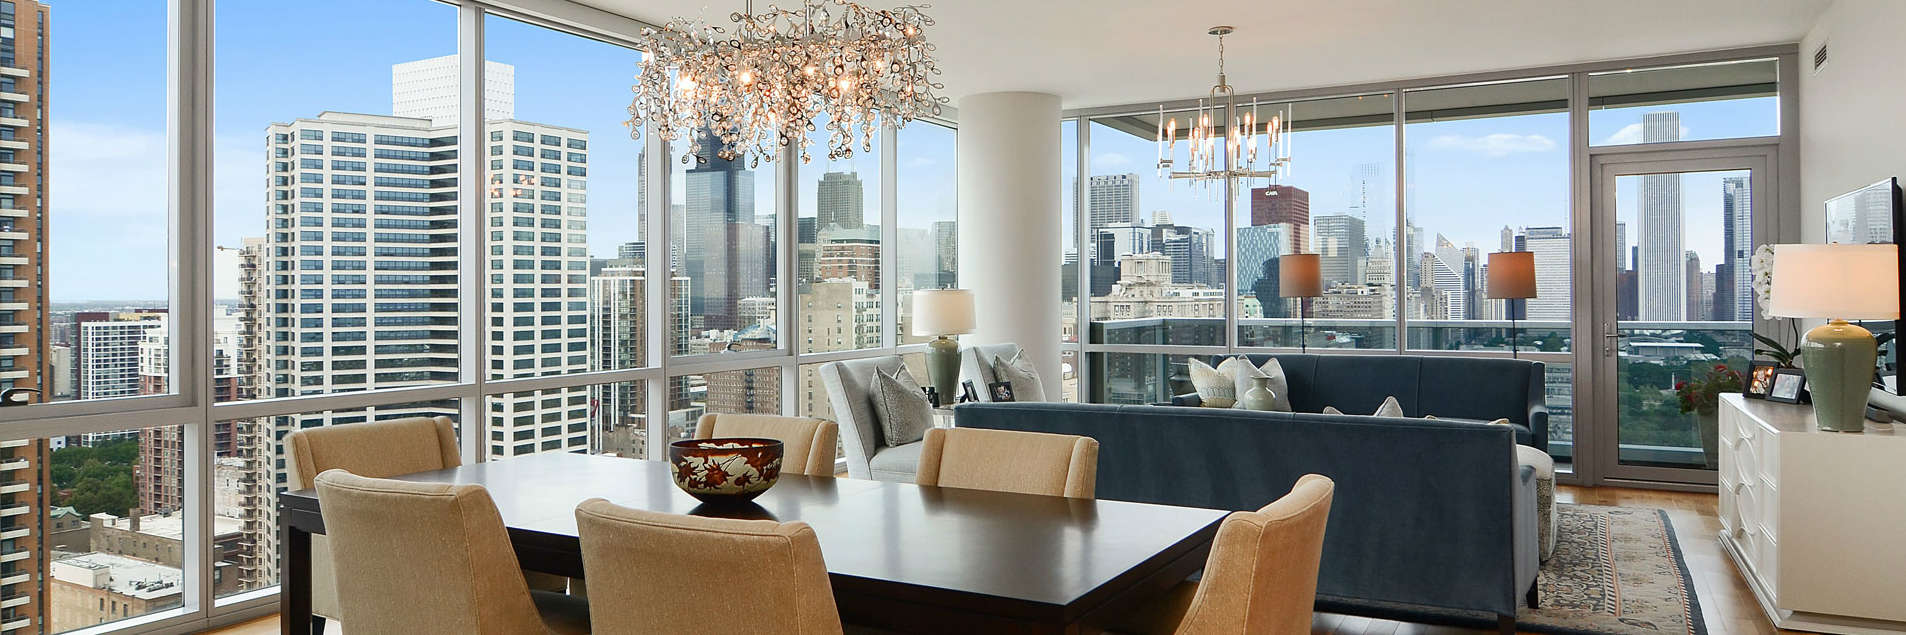 Living room with grate city views